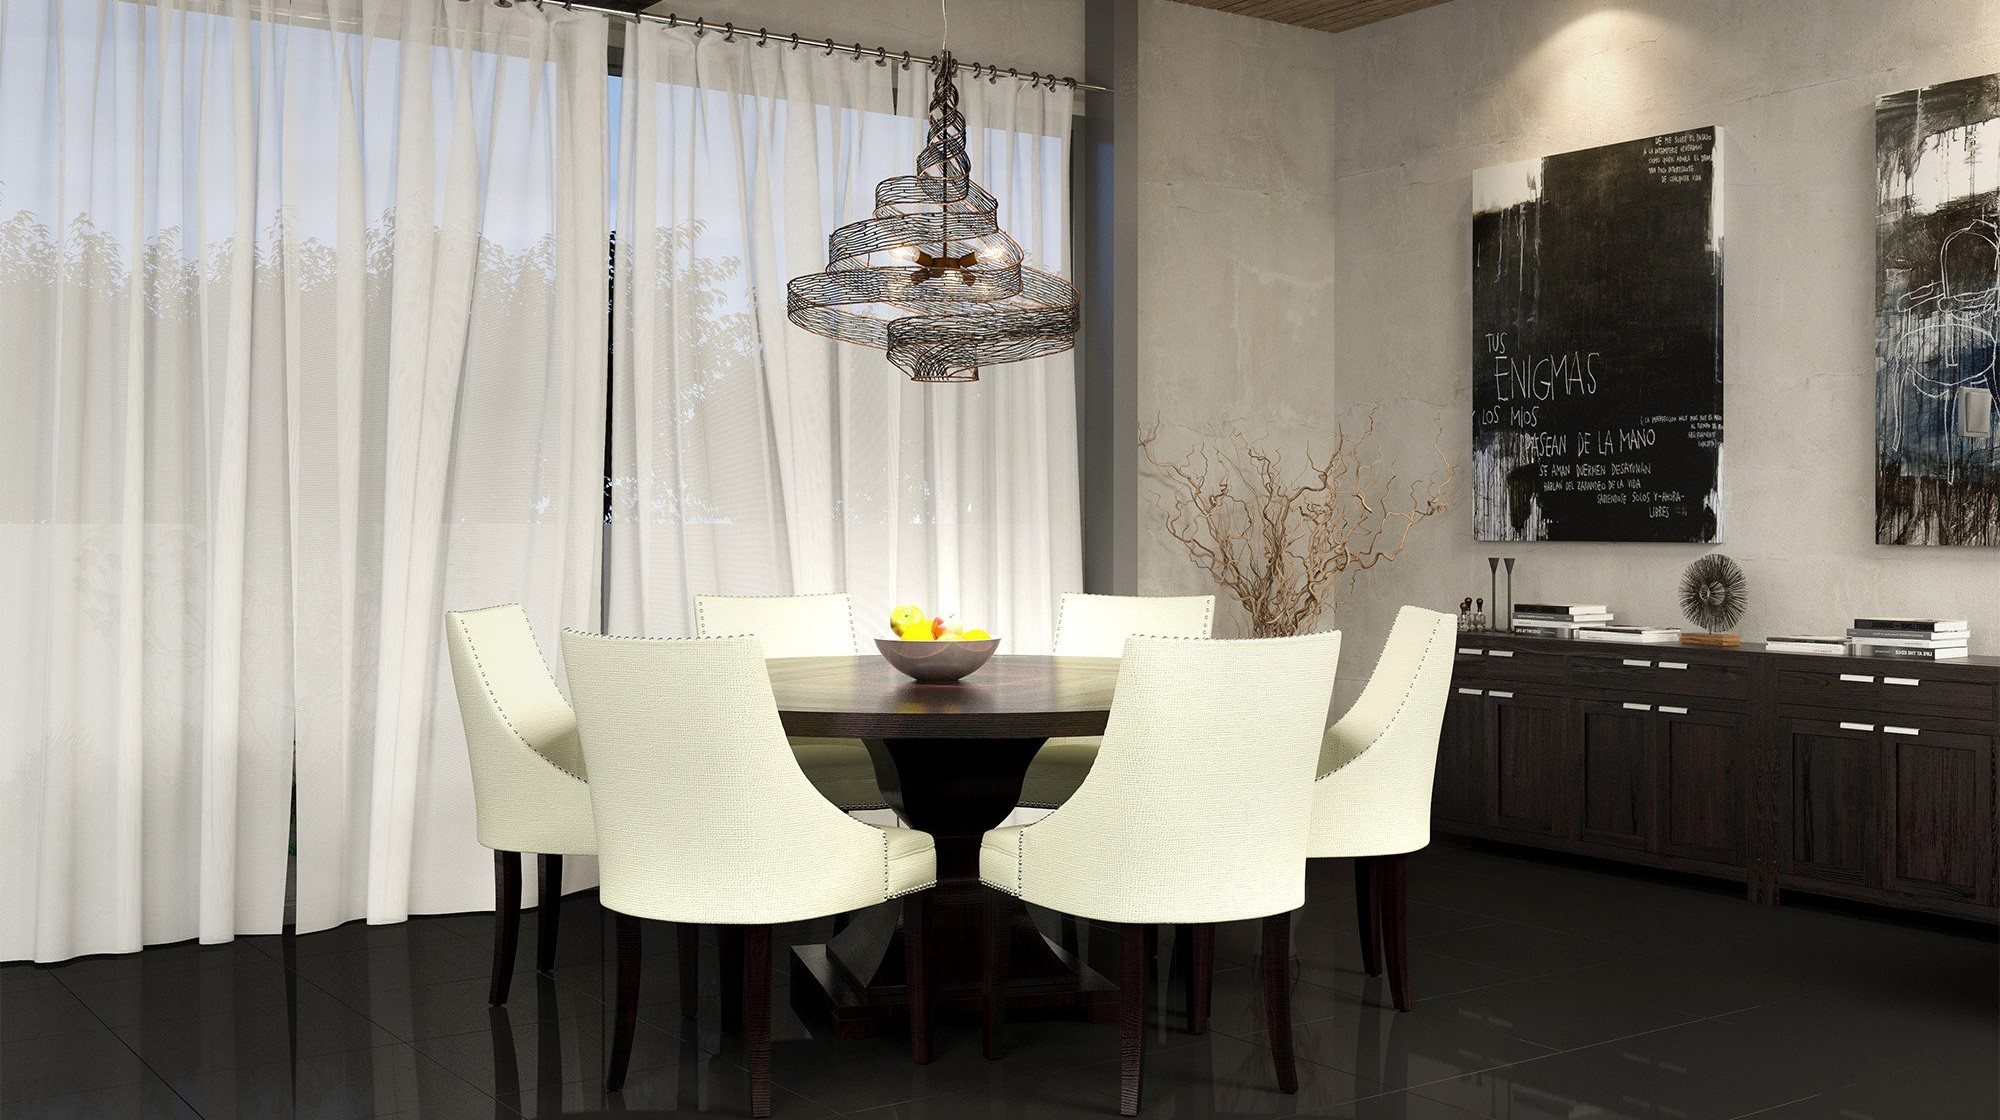 Lighting - Check out the selection of pendants, chandeliers and sconces